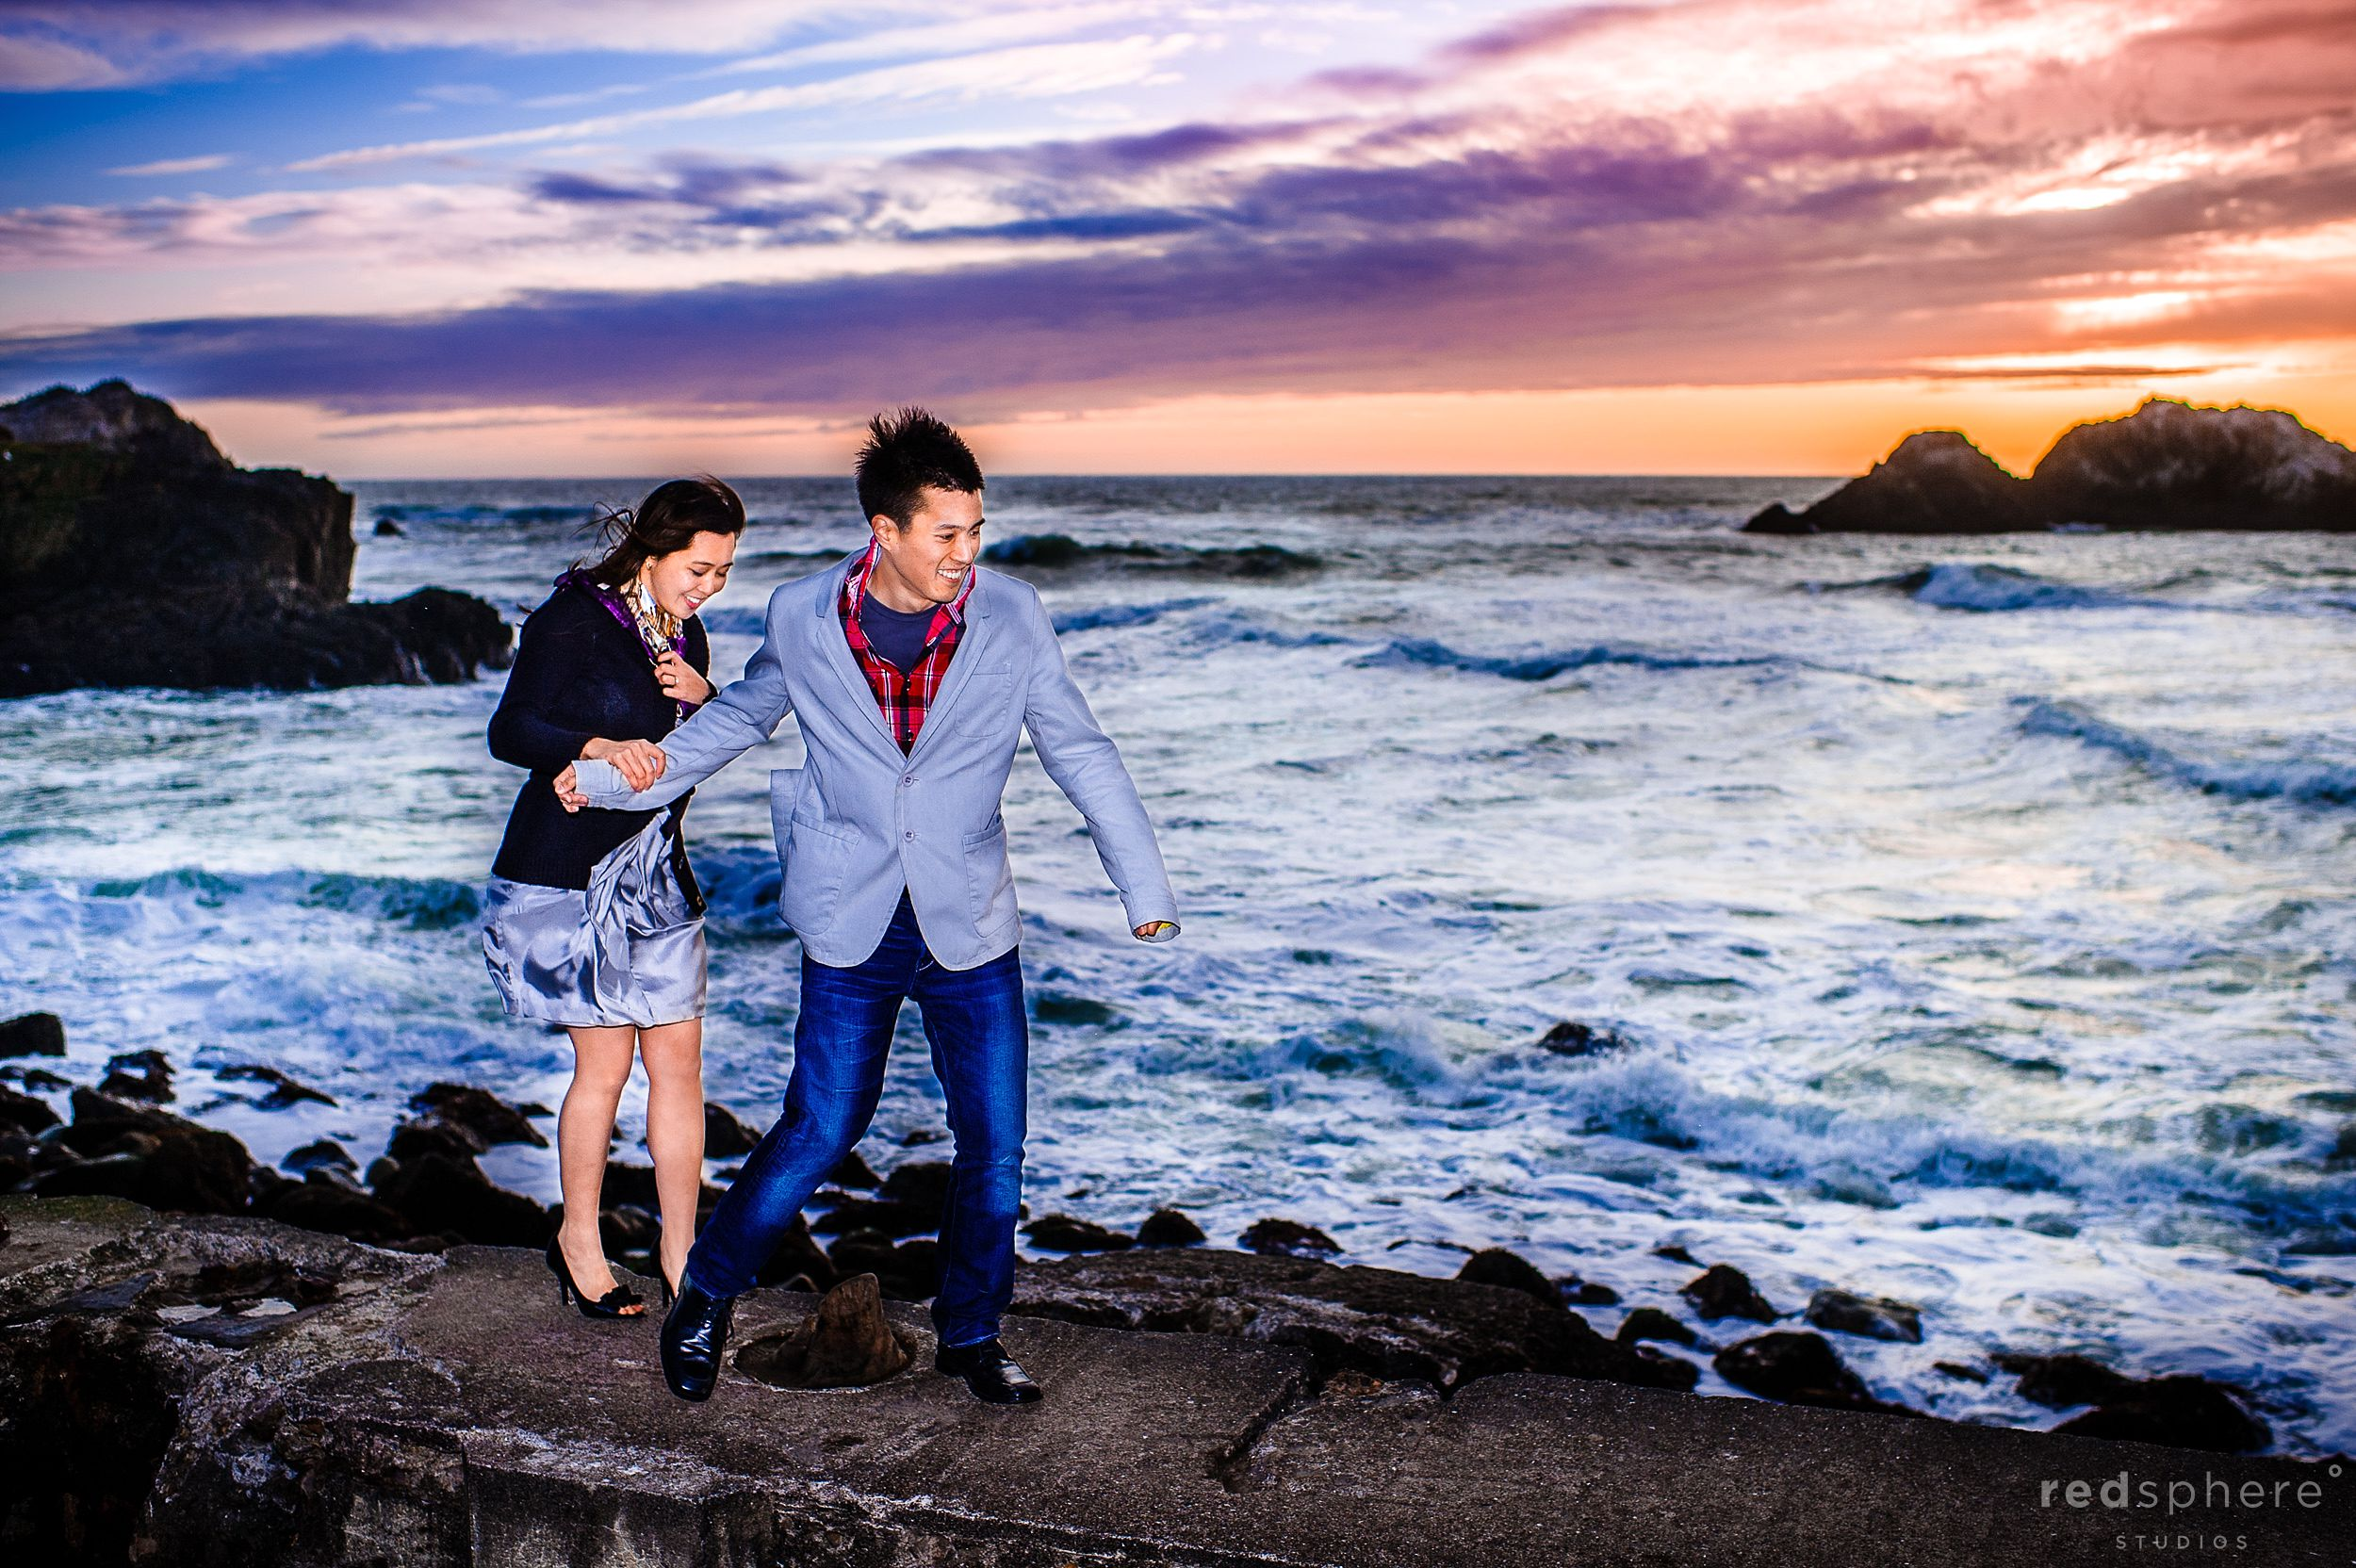 Man Leads Women on San Francisco's Sutro Bath Remains, Sunset Engagement Sessions